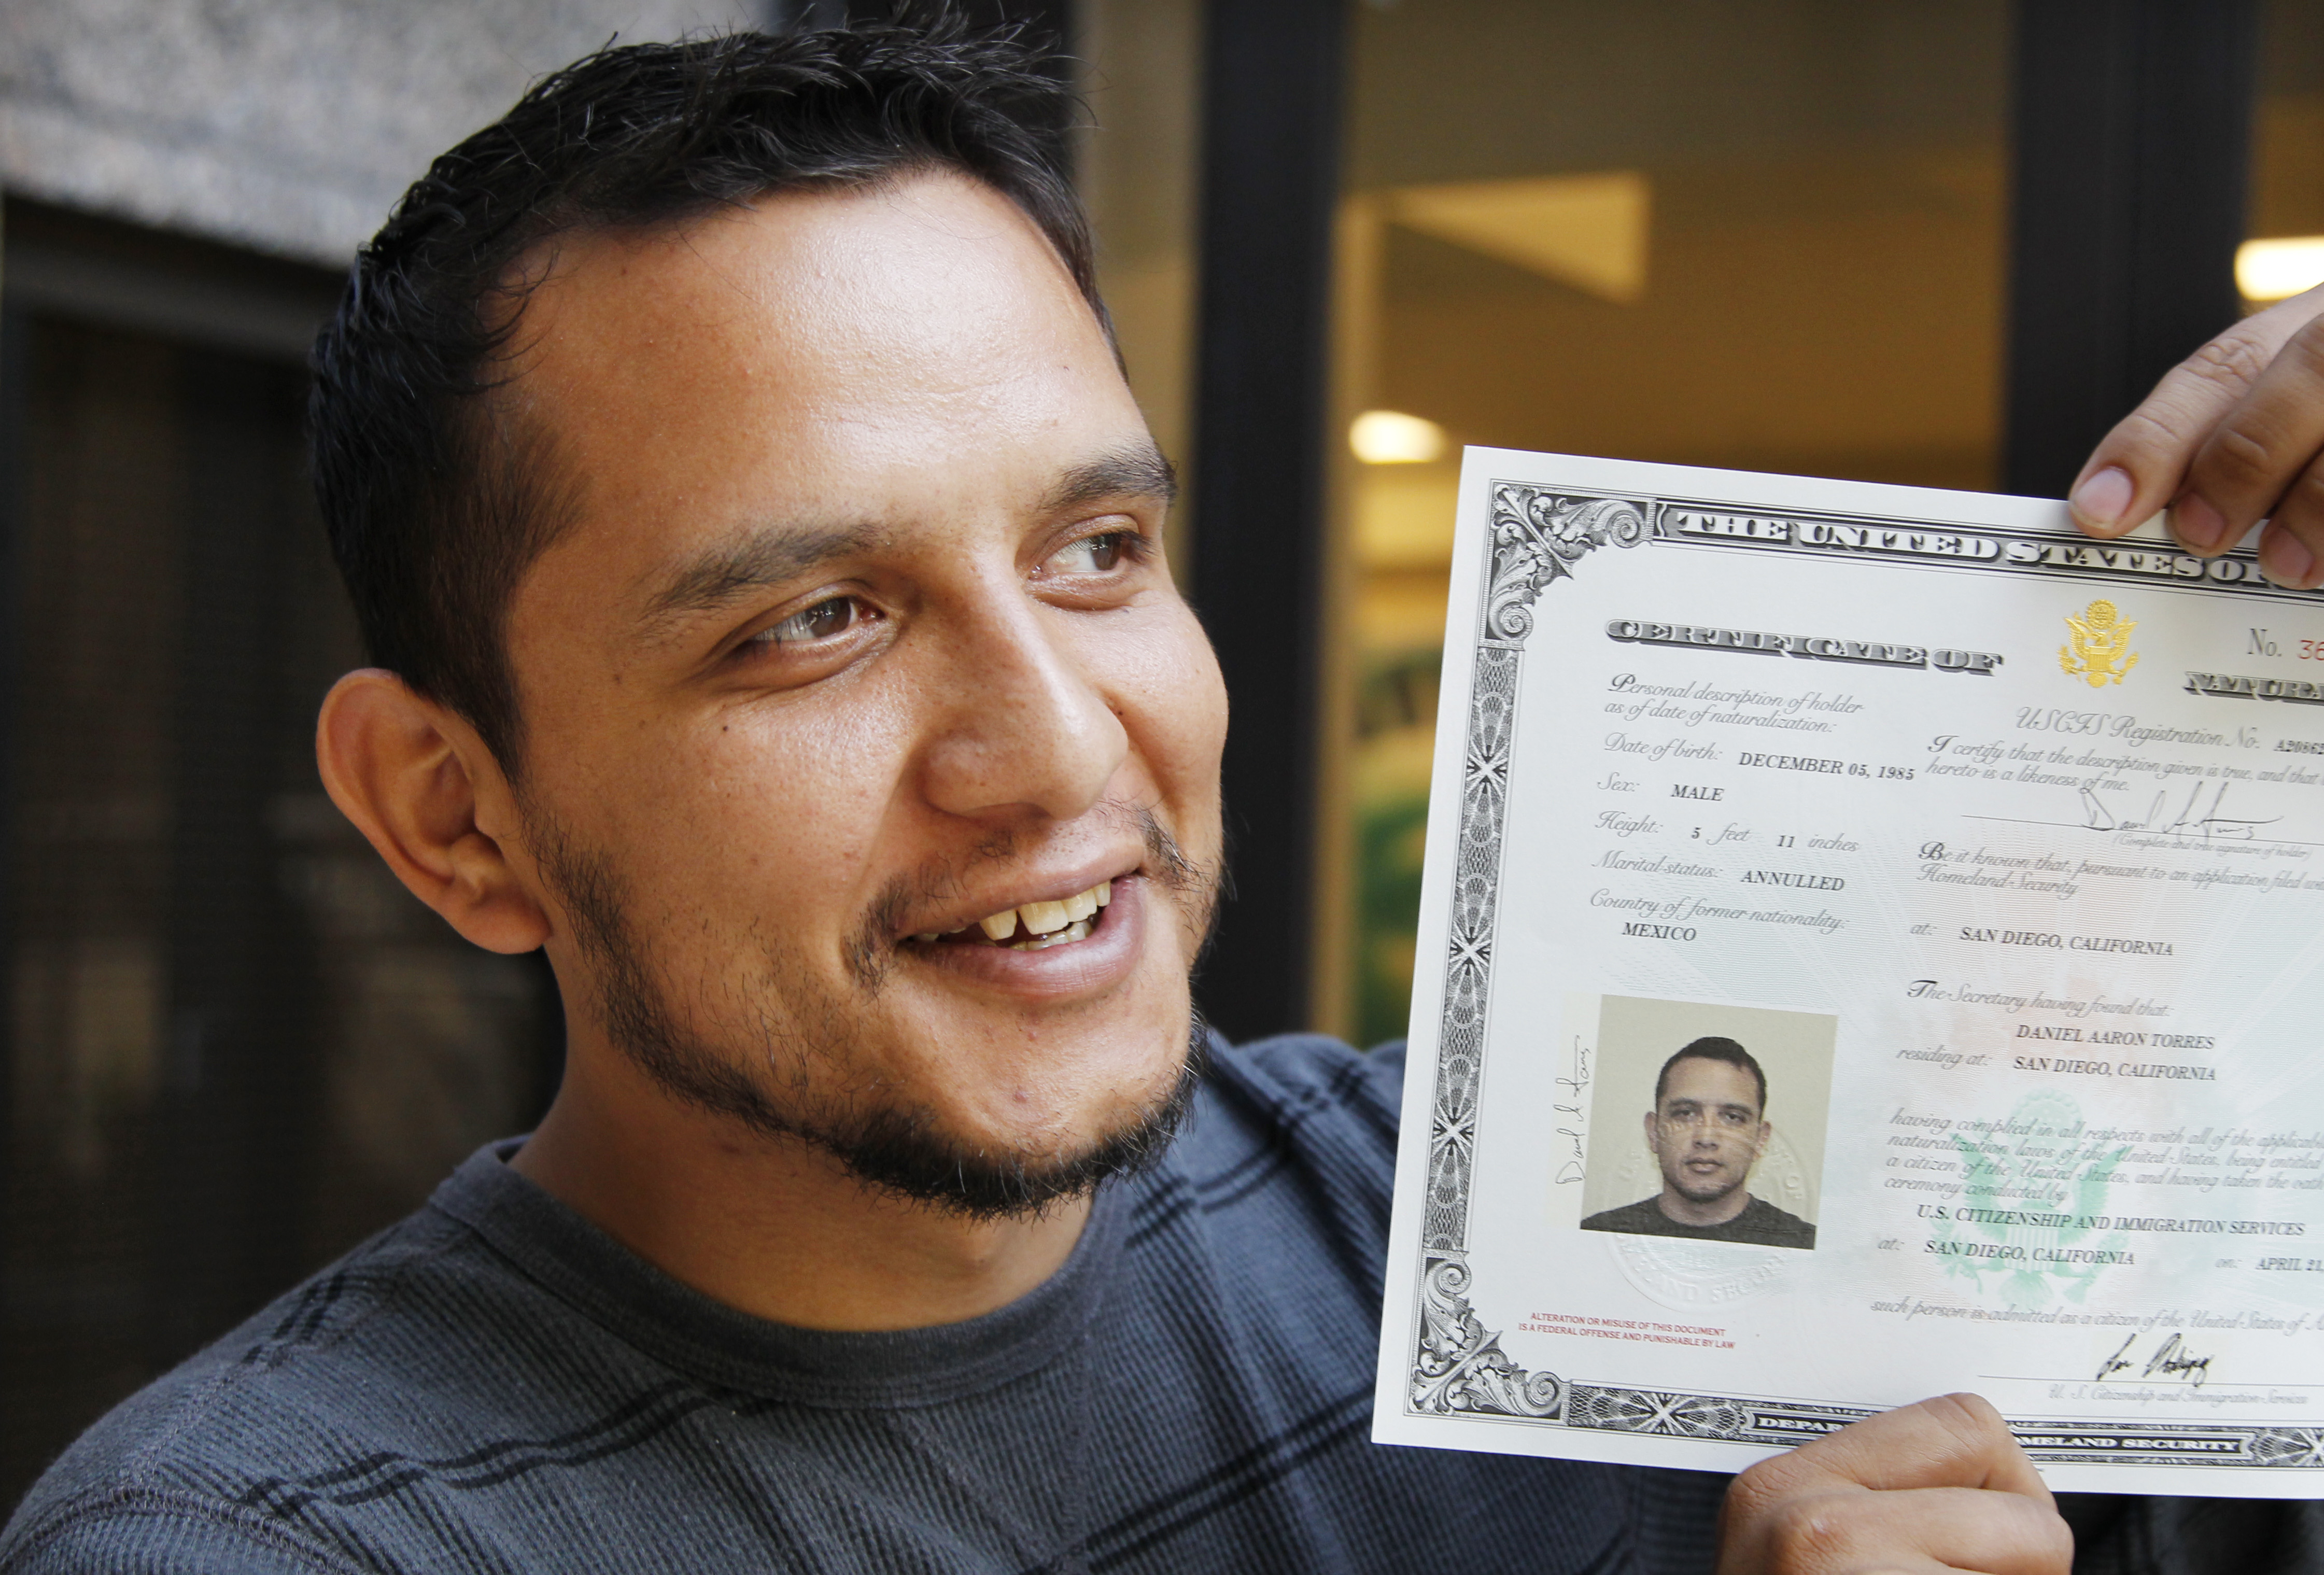 Opinion: I may be the first deported vet ever granted U.S. citizenship